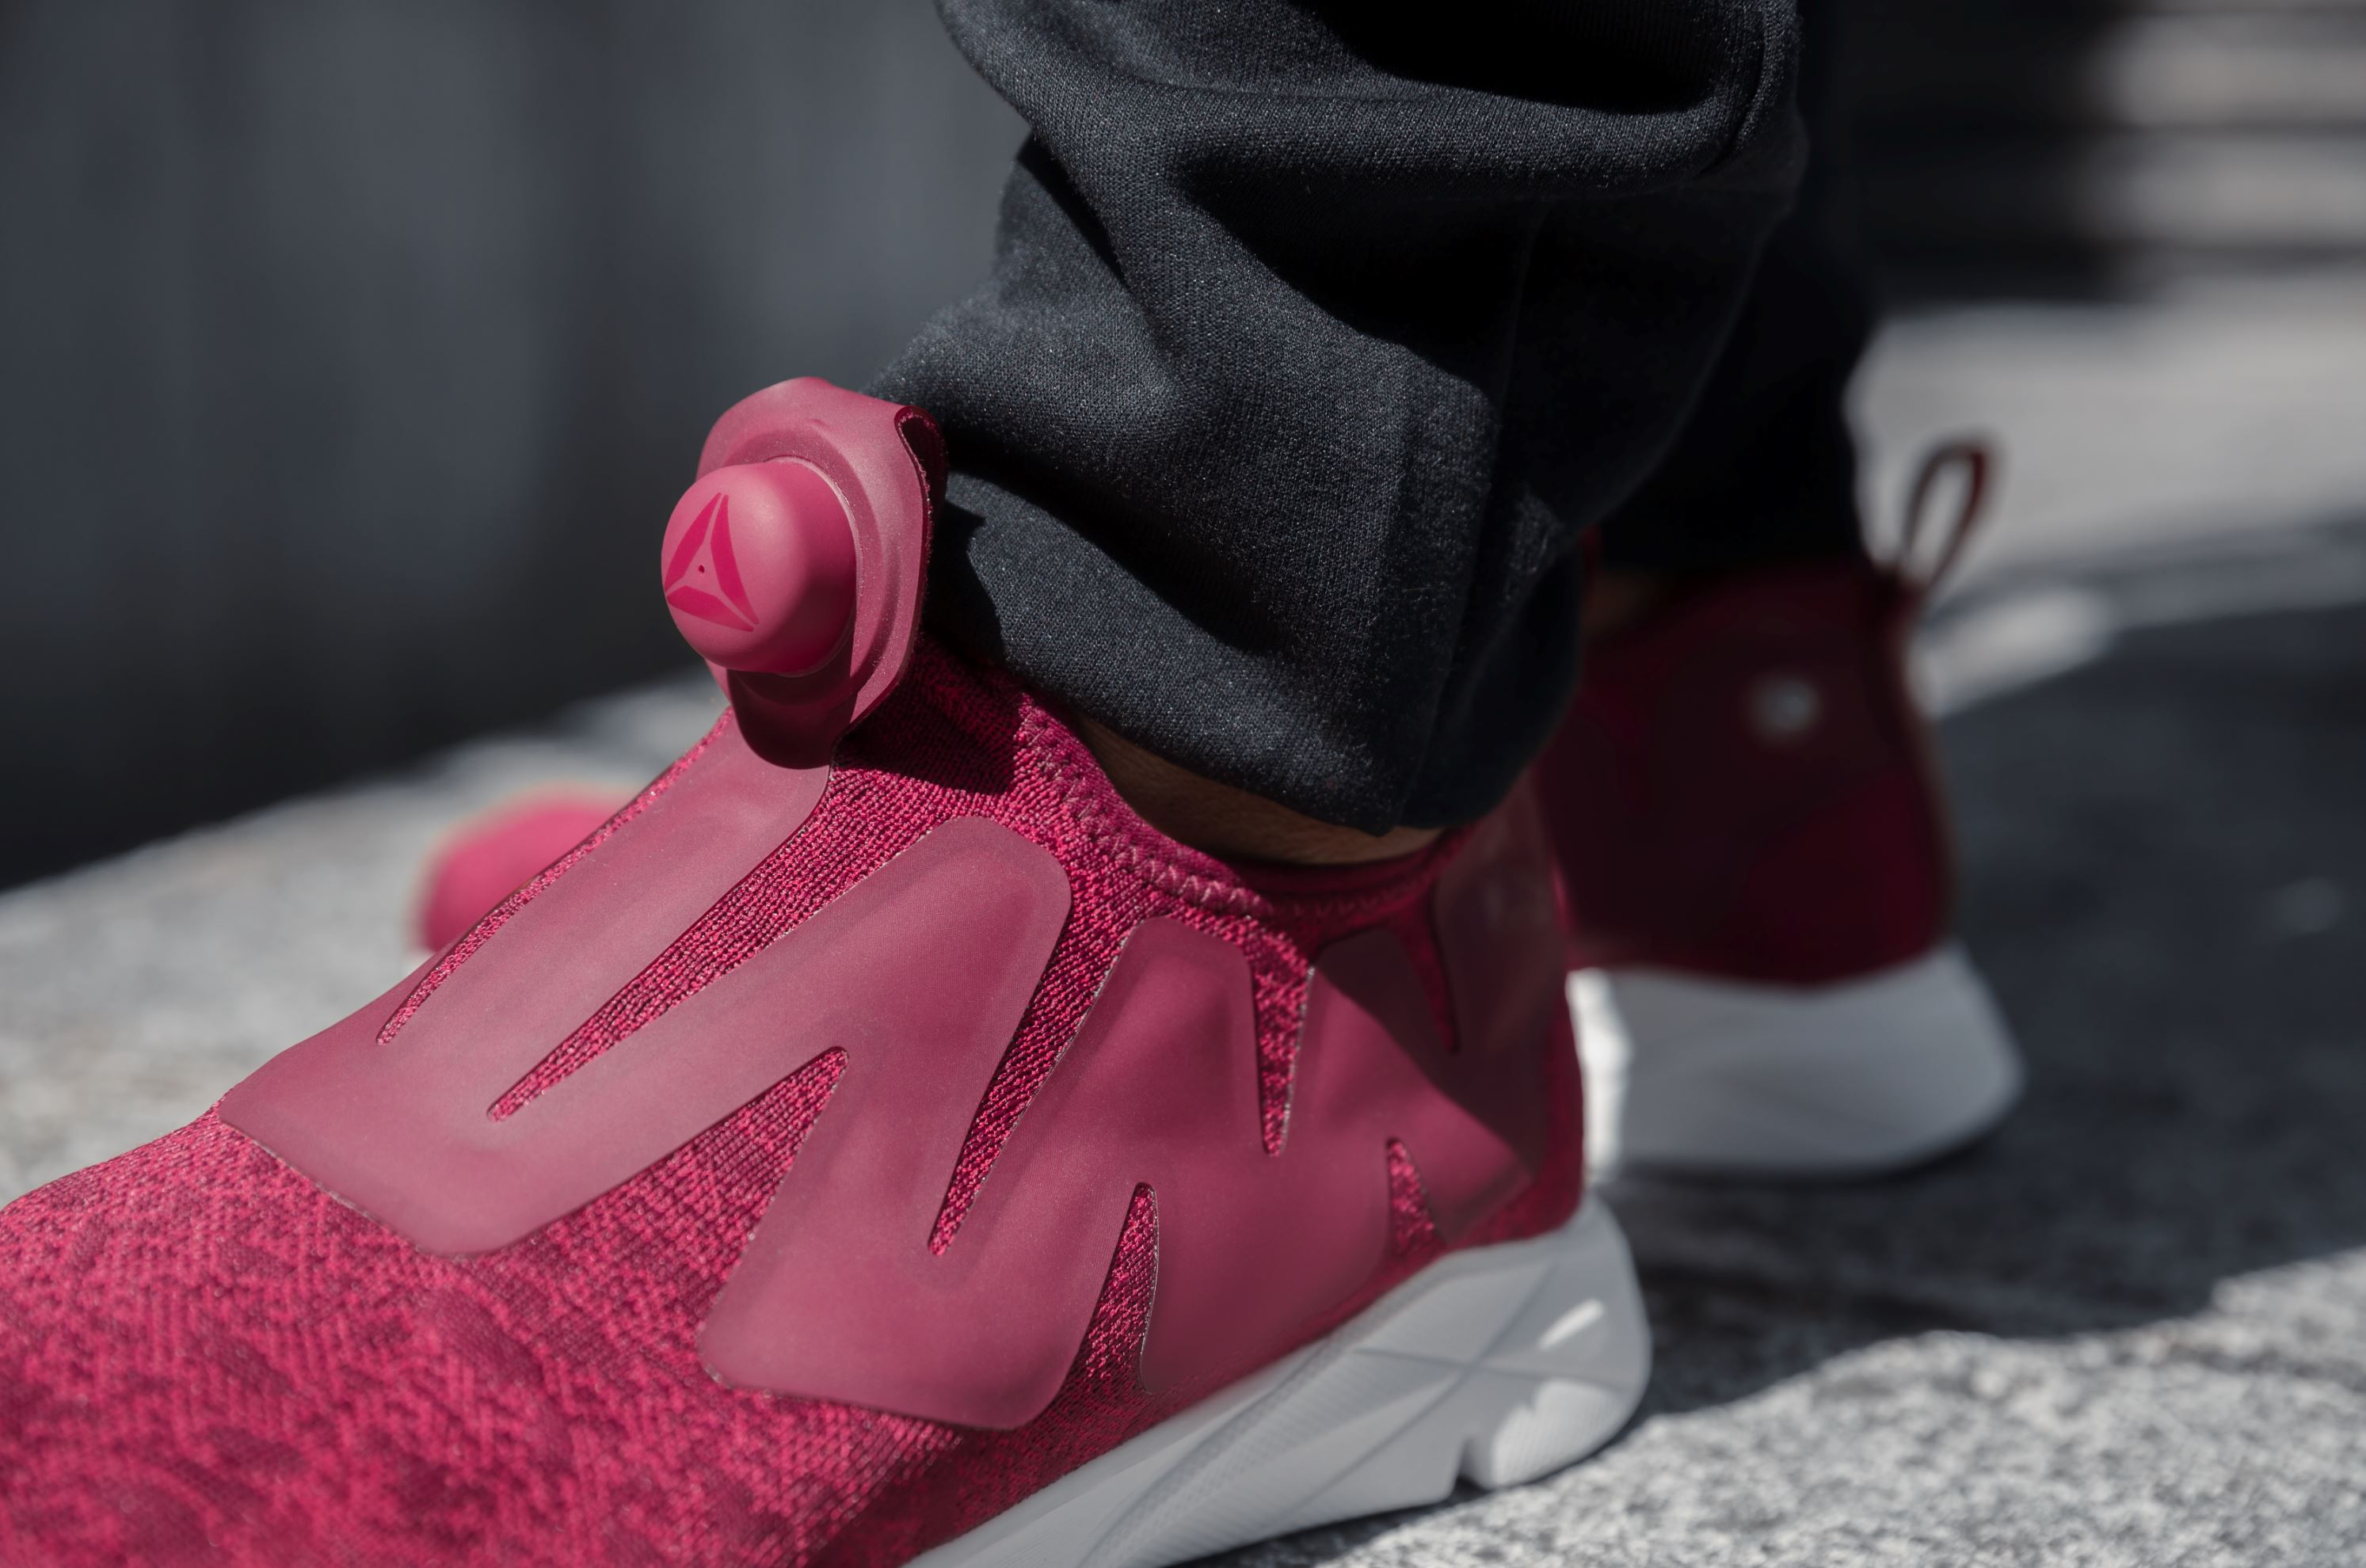 The Reebok Pump Supreme Gets Updated with a Price Drop